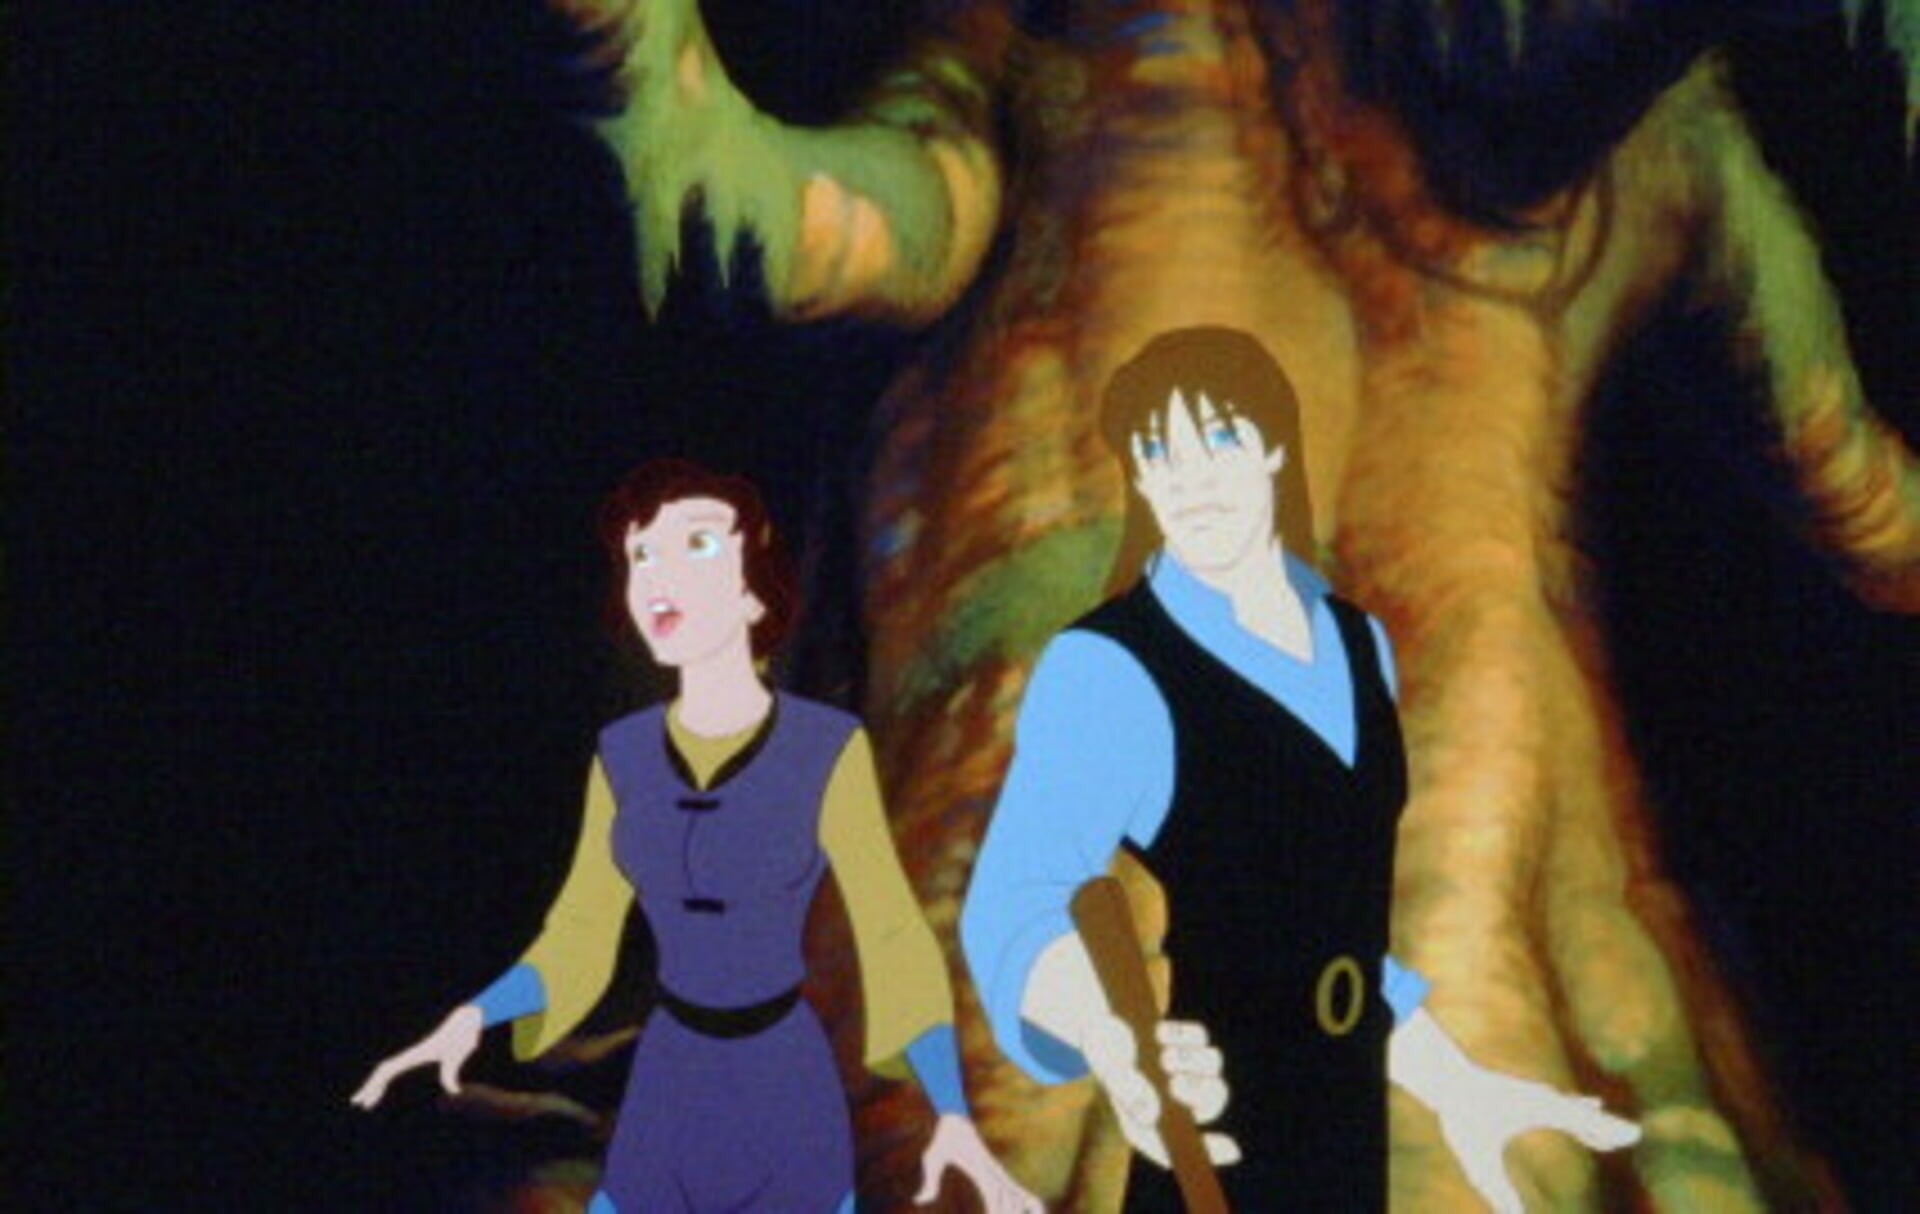 Quest for Camelot - Image 7